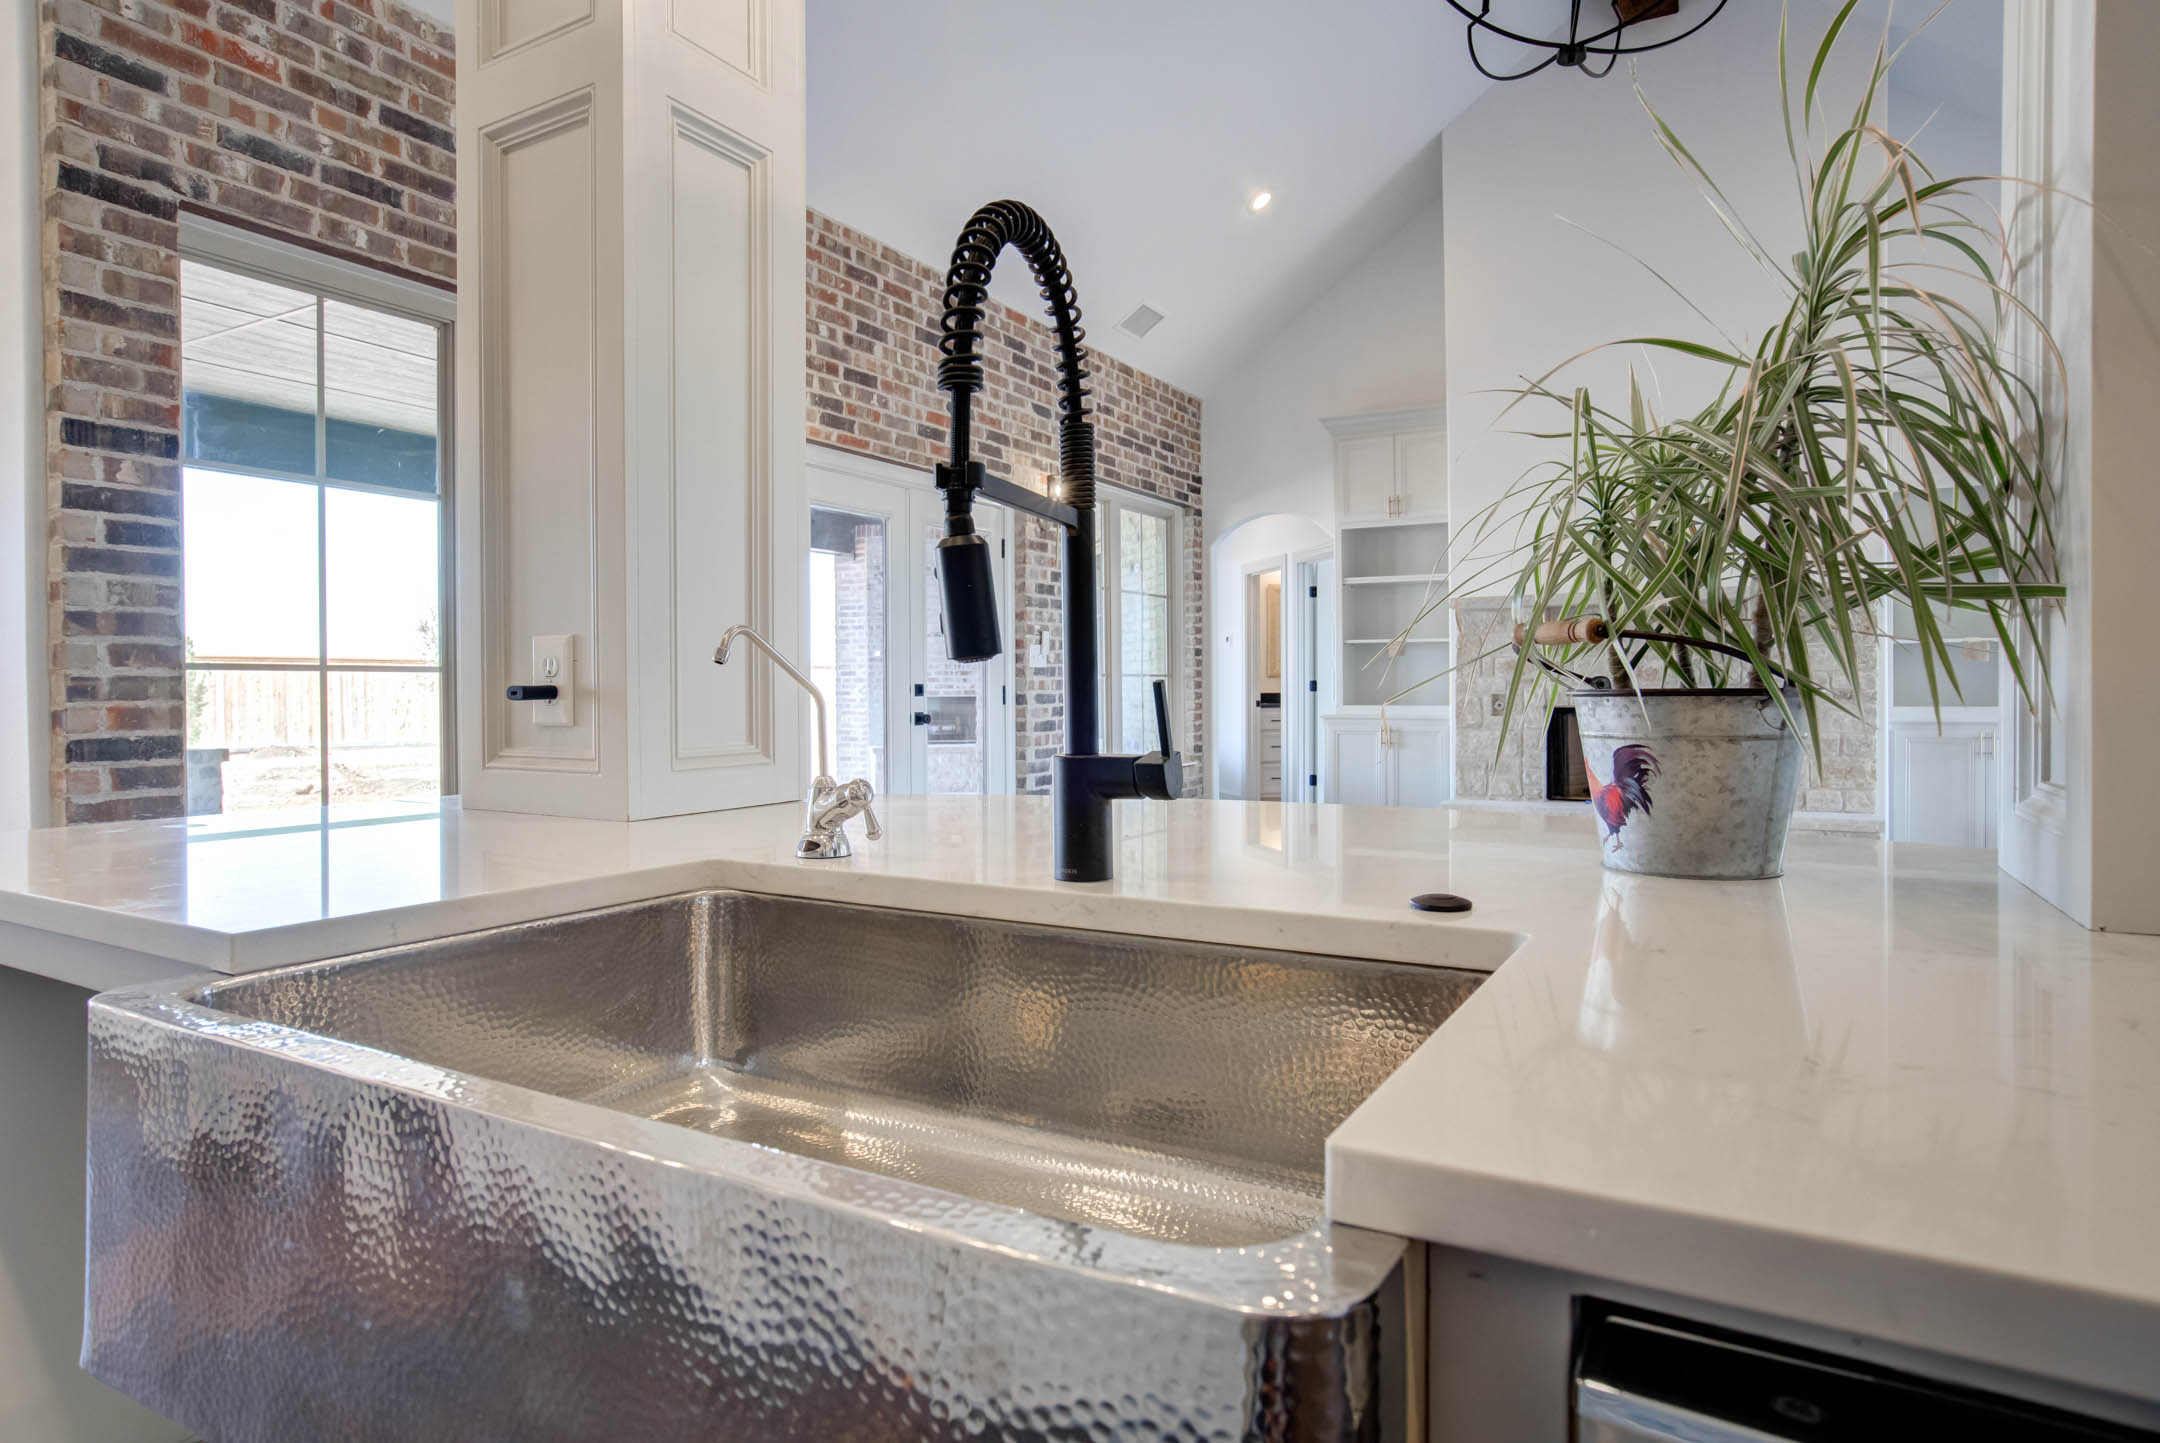 Detail of sink in beautiful kitchen in house at New Home, Texas.